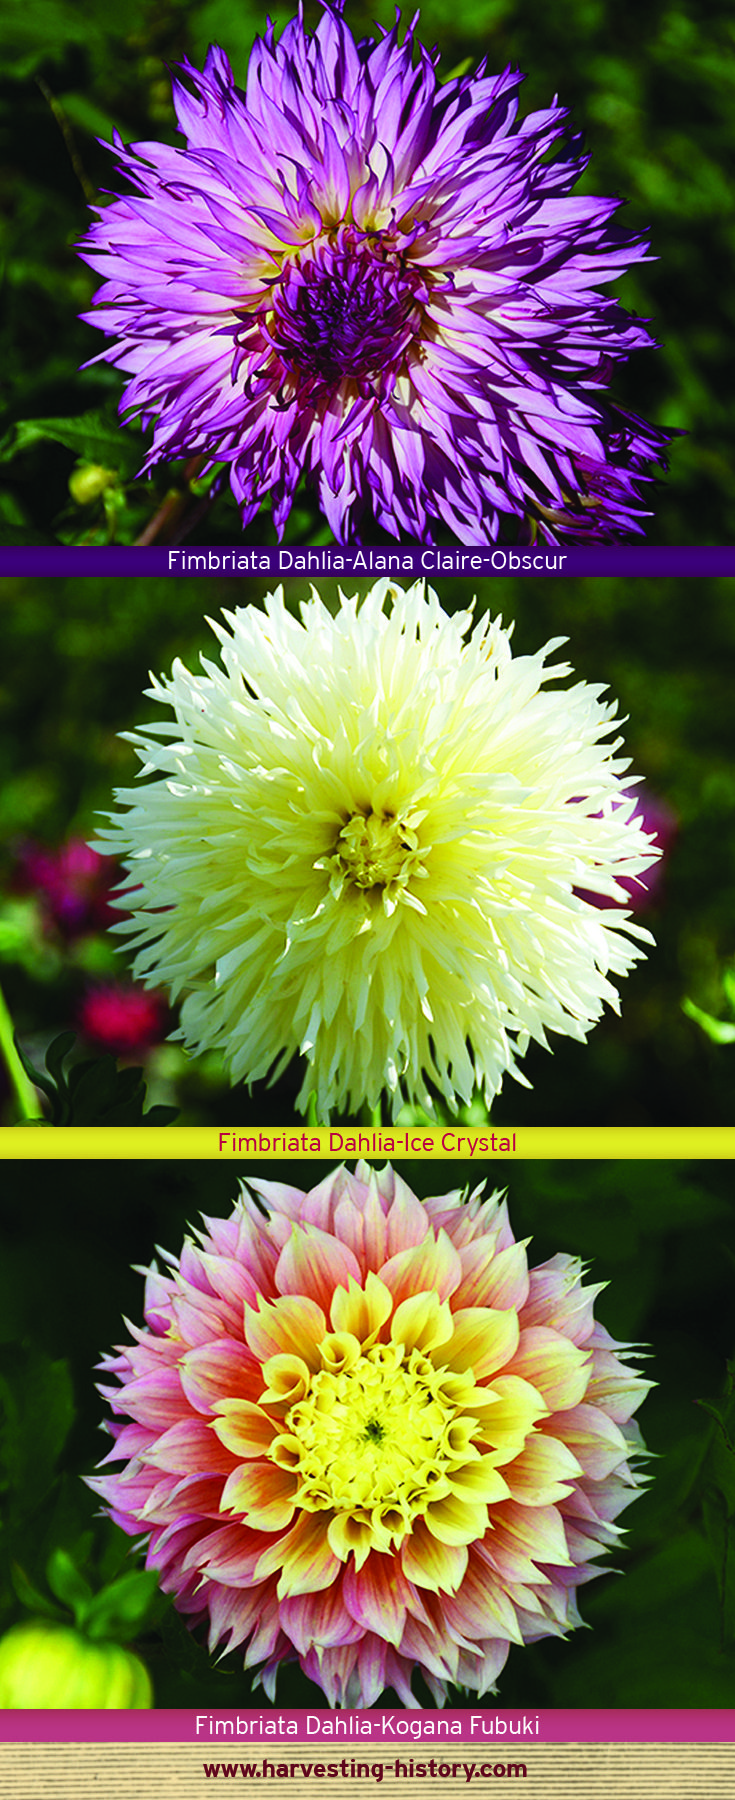 Fimbriata Dahlias Take Their Name From The Latin Word Meaning Frilly The Flower Heads Are Fully Double With Long Thin Petals That Revolu Dahlia Flowers Petals